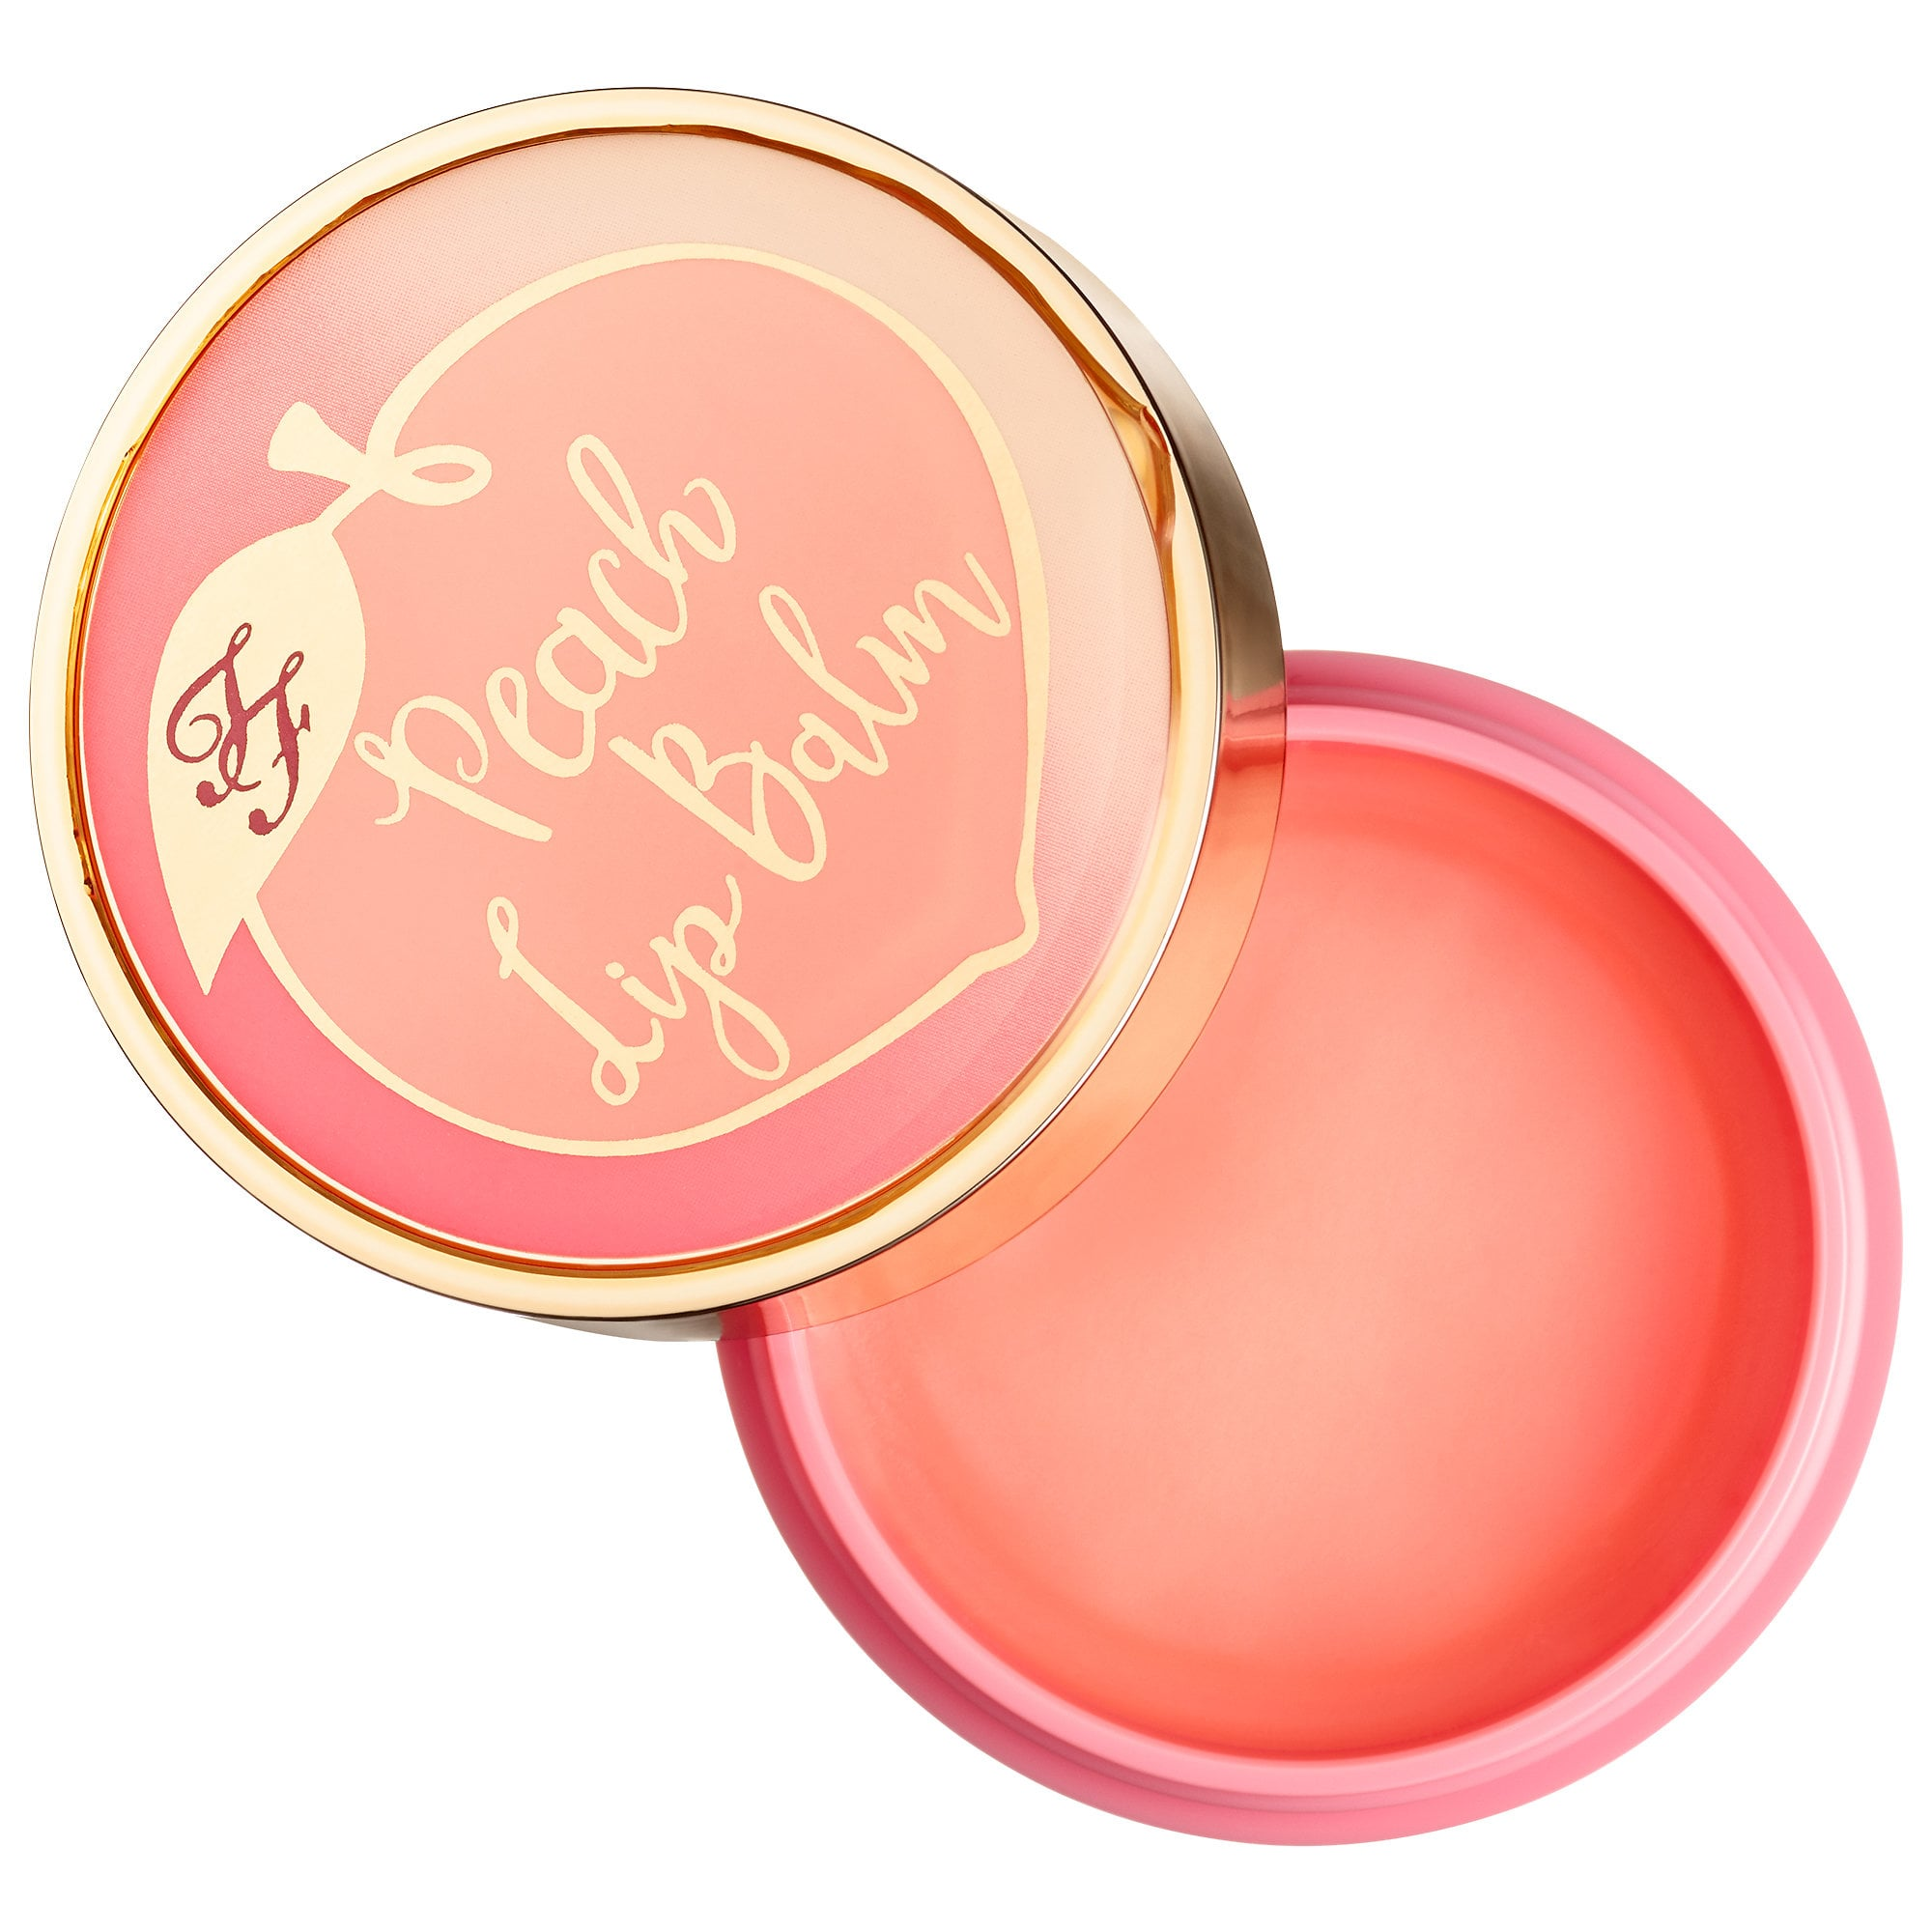 18 Lip Care Products To Add To Your Skin Care Routine - HelloGiggles